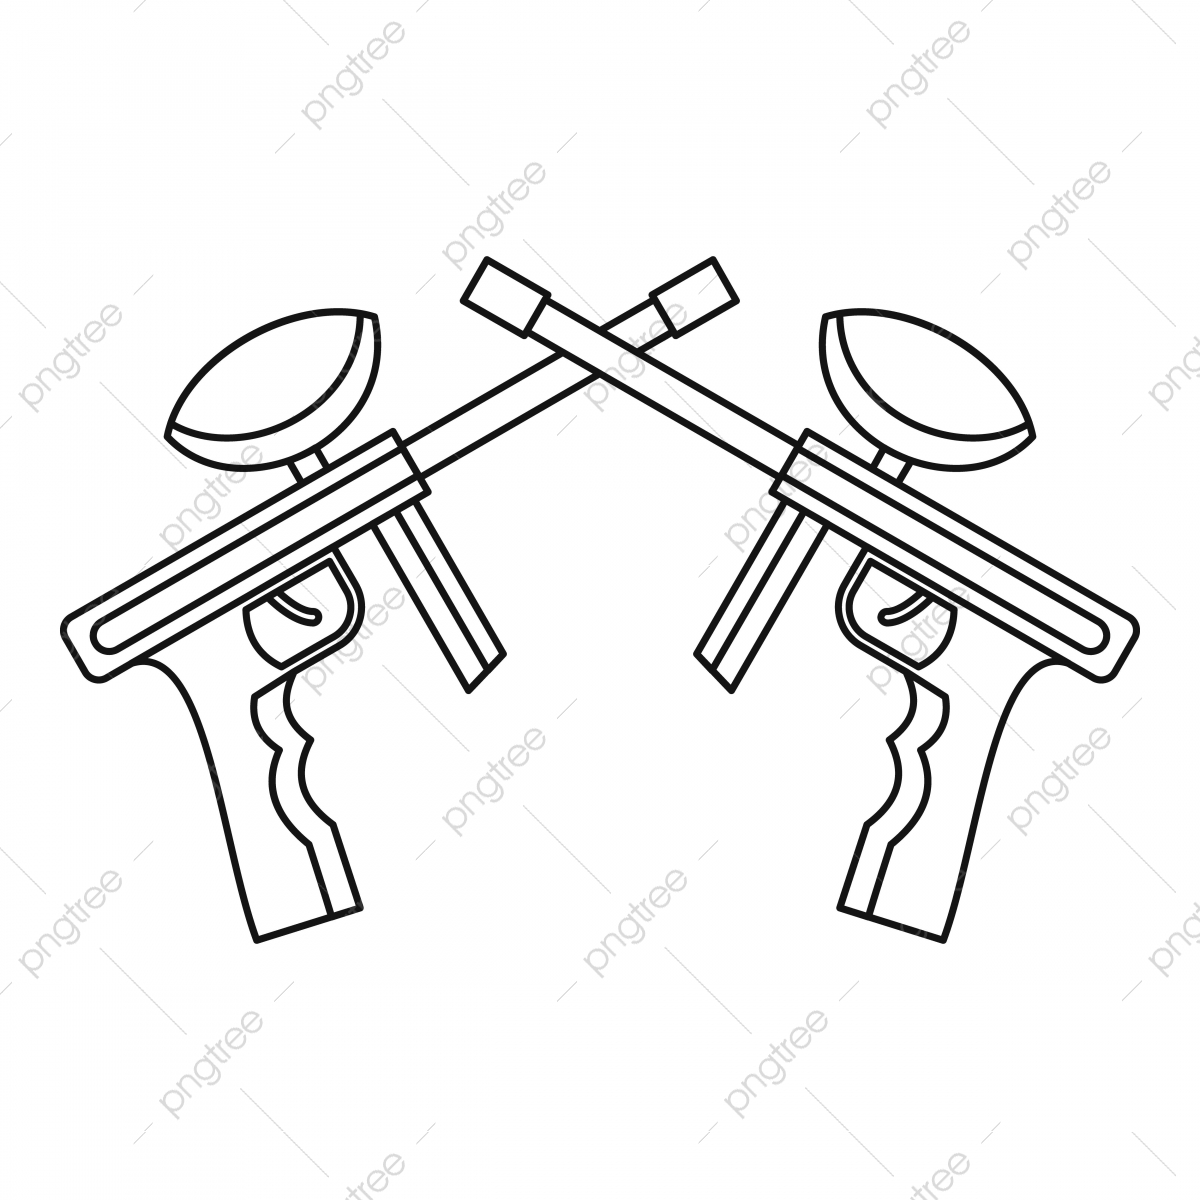 Paintball Guns Icon Outline Style Style Icons Outline Icons Gun Png And Vector With Transparent Background For Free Download